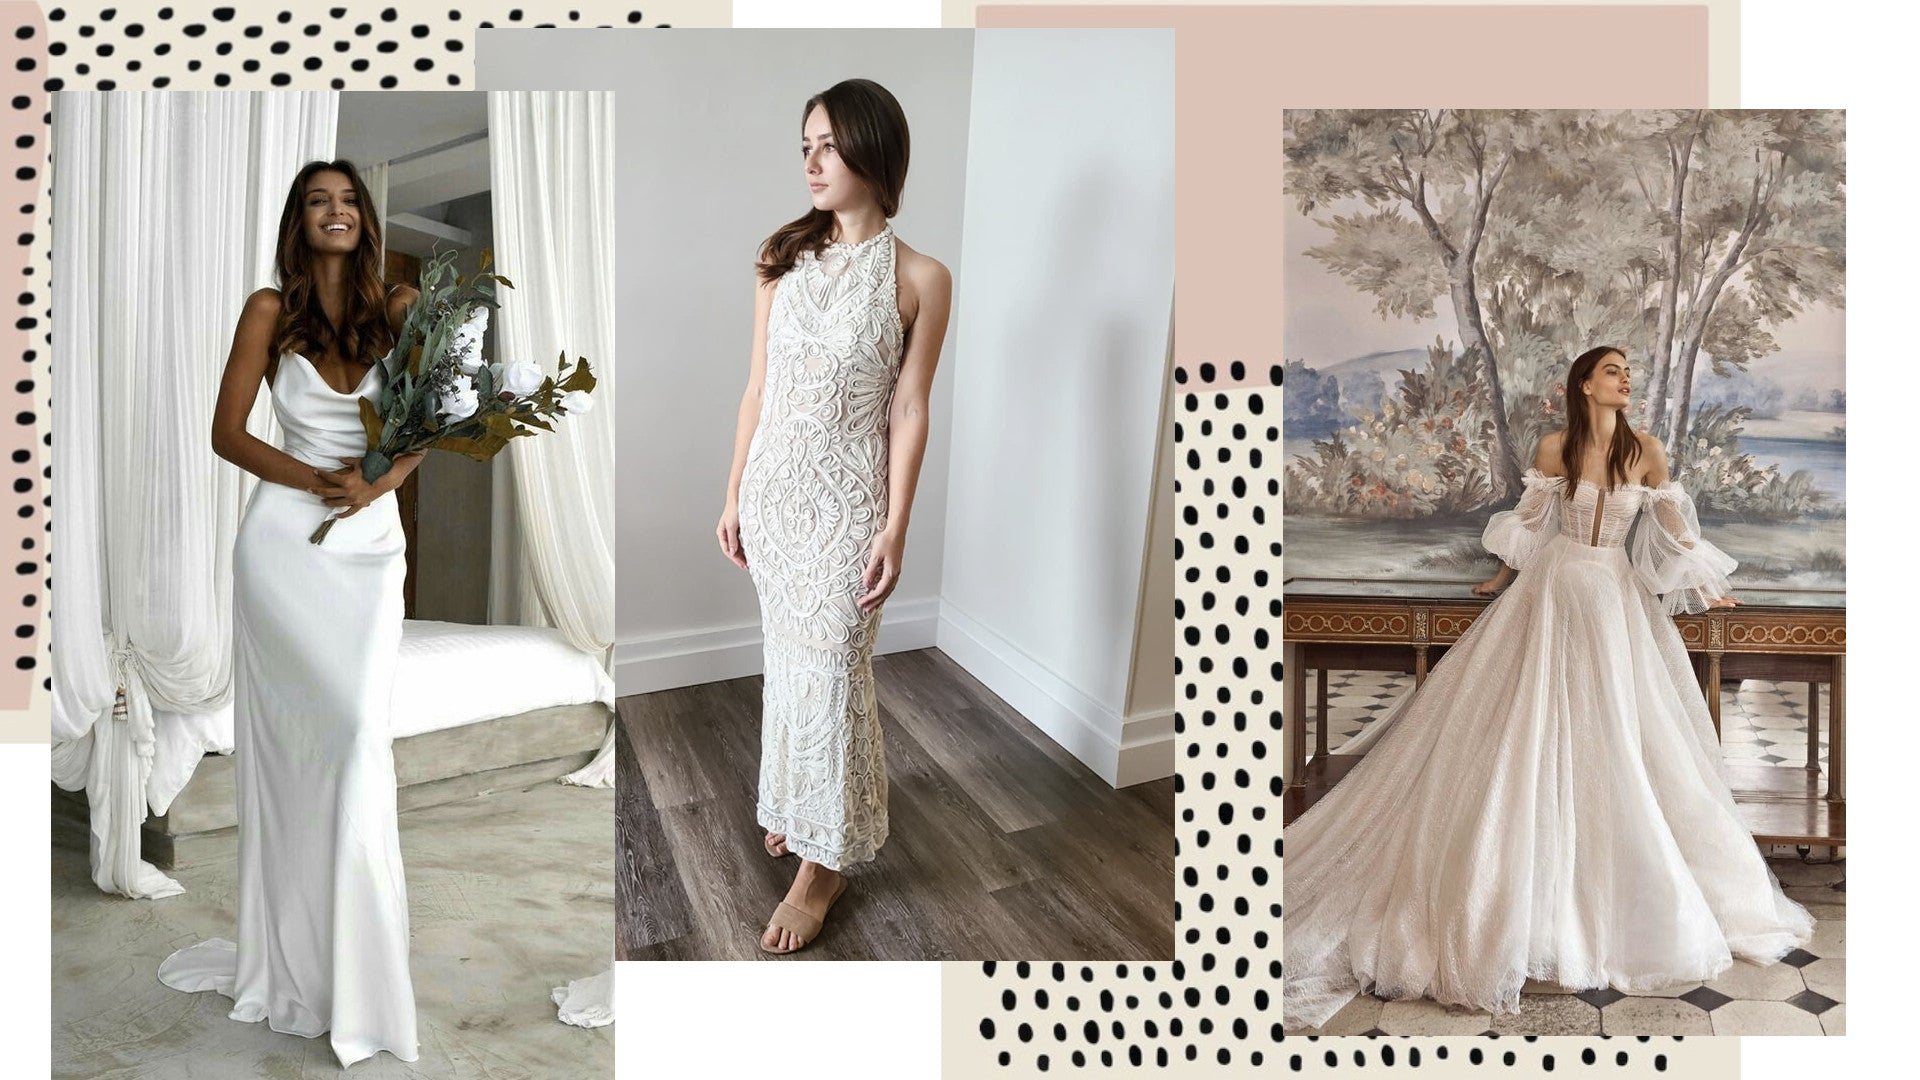 Silky wedding dresses and beaded wedding dresses from Vancouver bridal consignment La Laurel